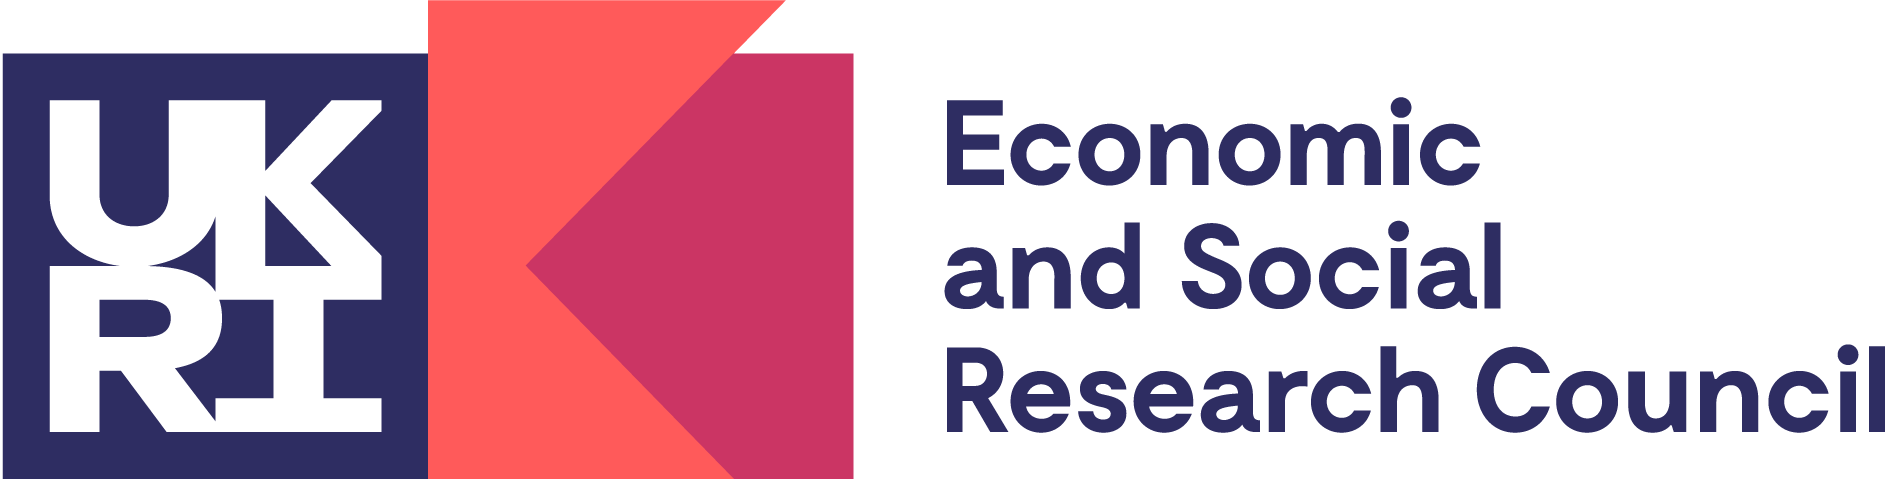 UKRI and ESRC logo